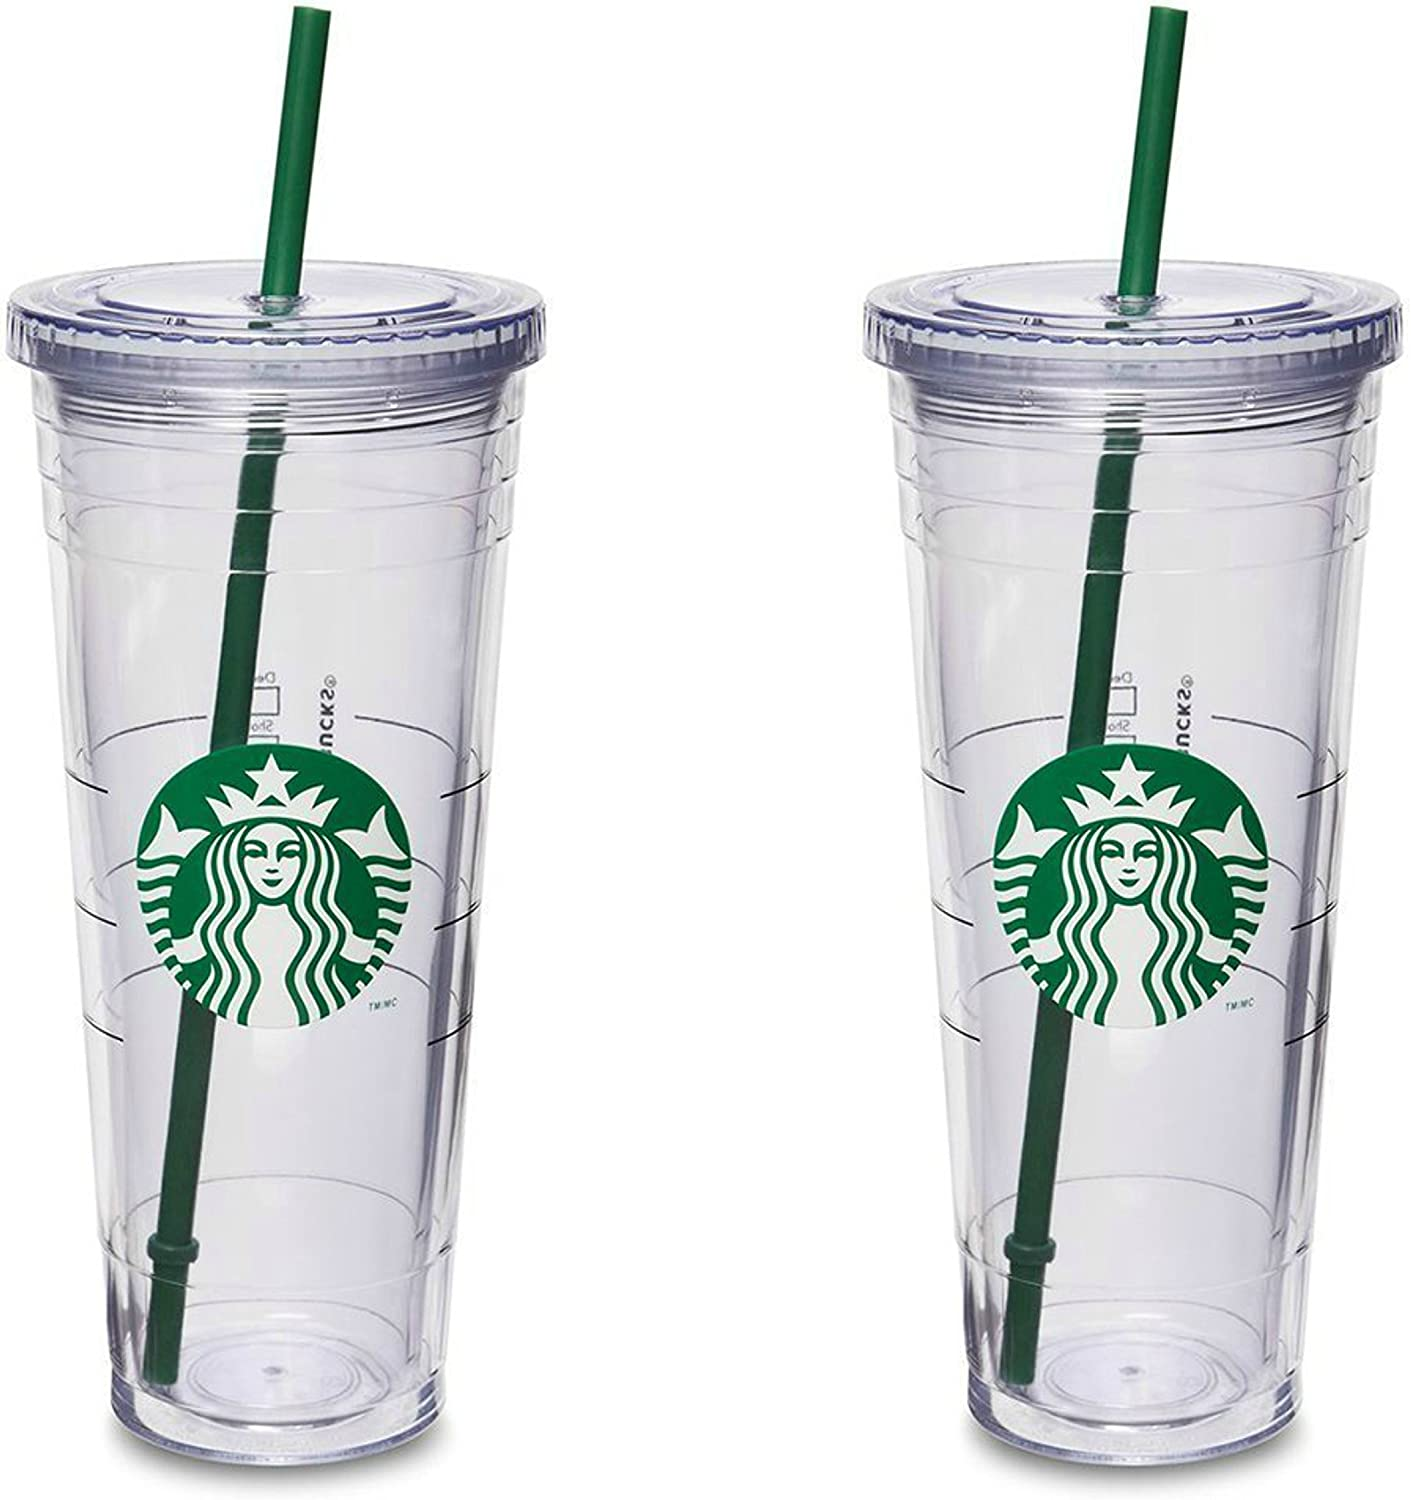 Starbucks Venti Insulated Travel Tumbler 24 OZ   Double Wall Acrylic   2 Pack Set